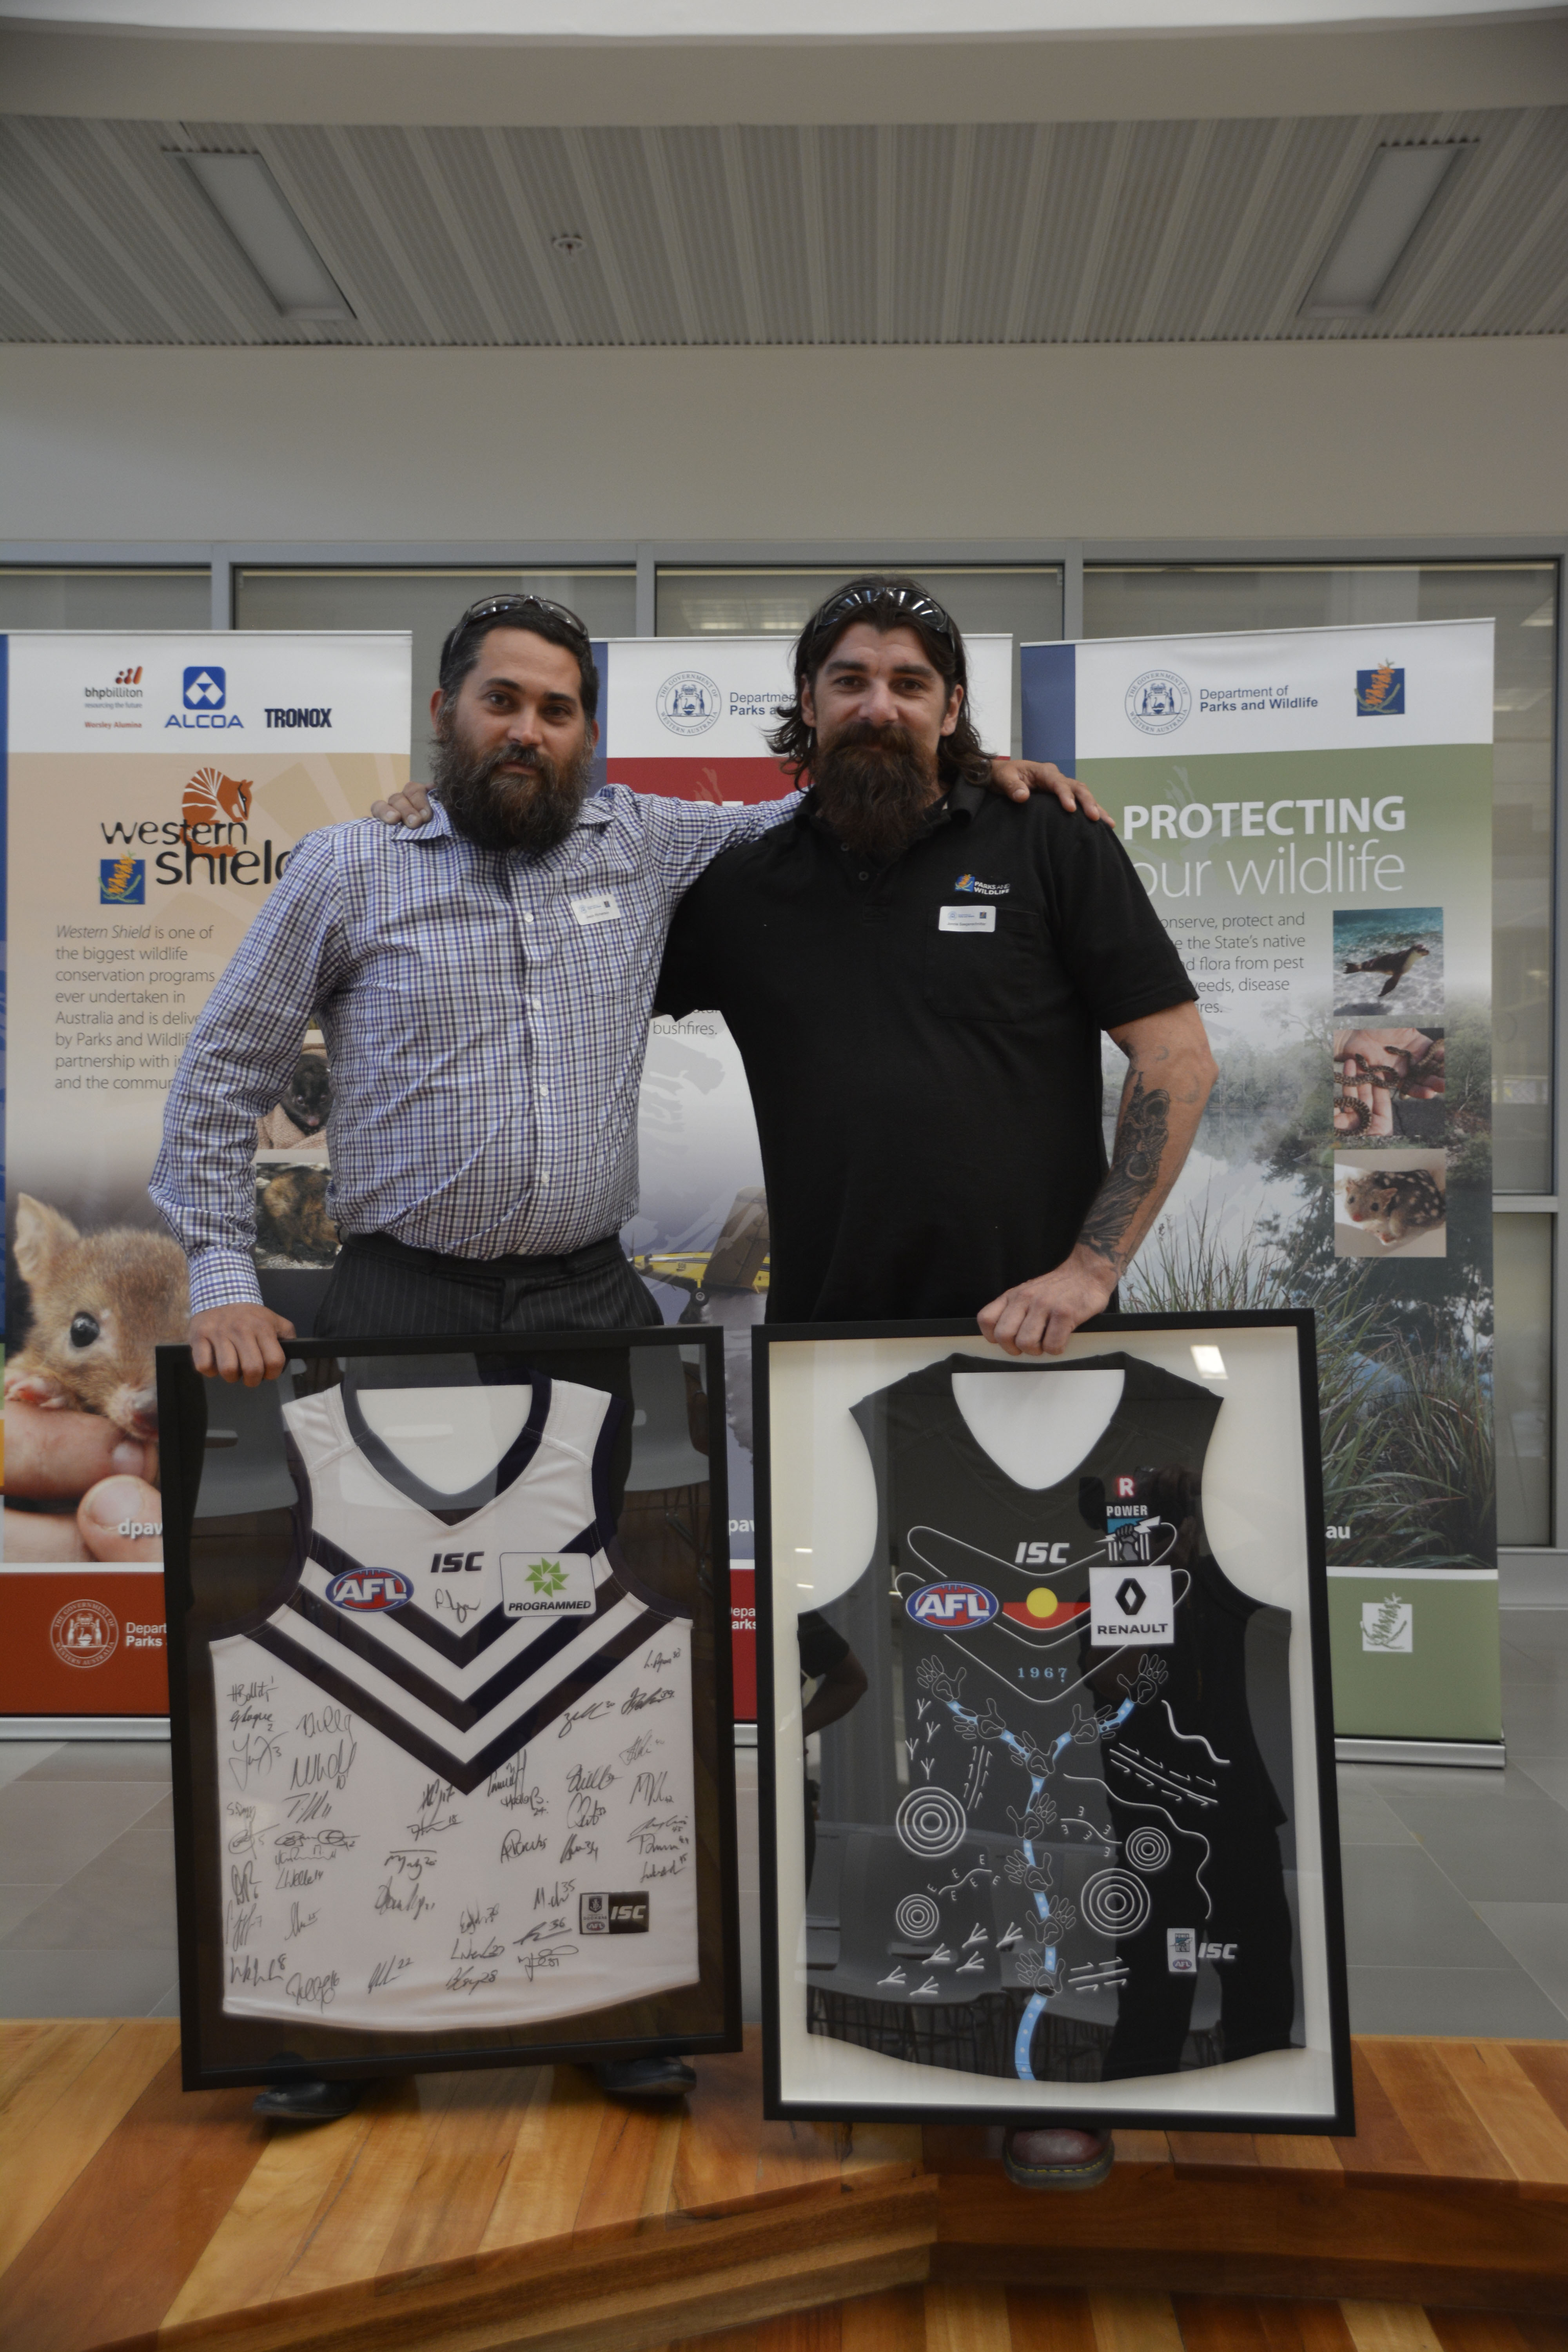 Jonnie Saegenschnitter (right) with the 2017 Aboriginal Trainee of the year Jason Richardson.